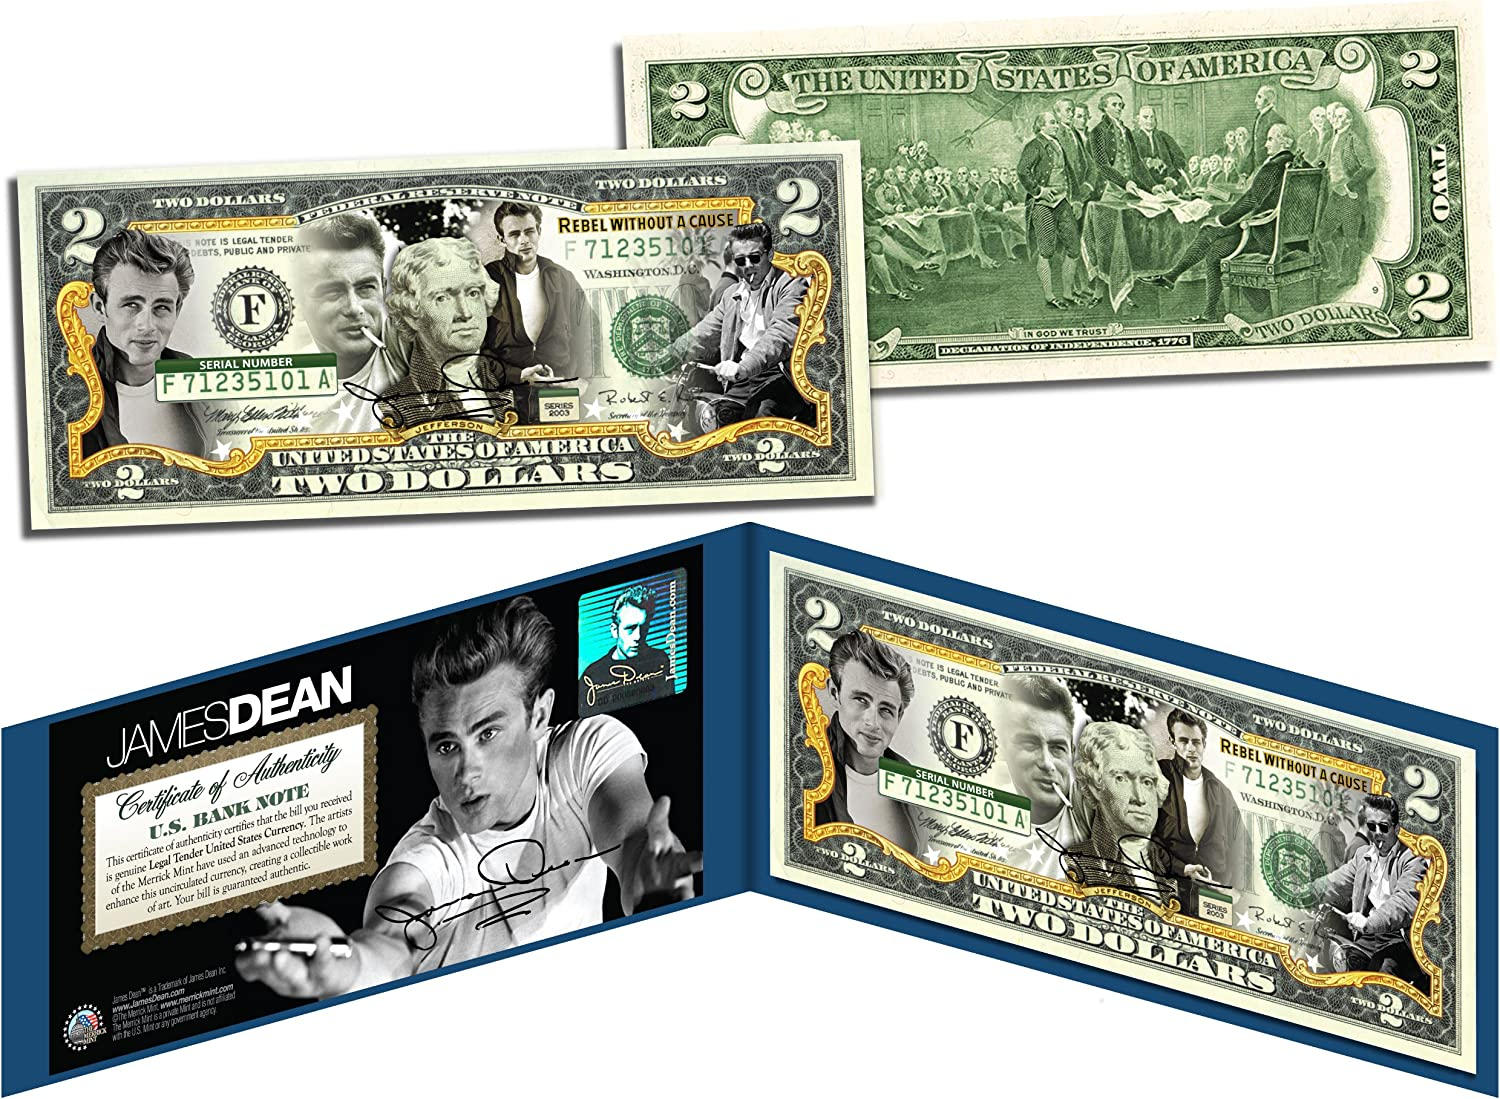 JAMES DEAN Rebel Without a Cause Legal Tender US Colorized $2 BillLICENSED